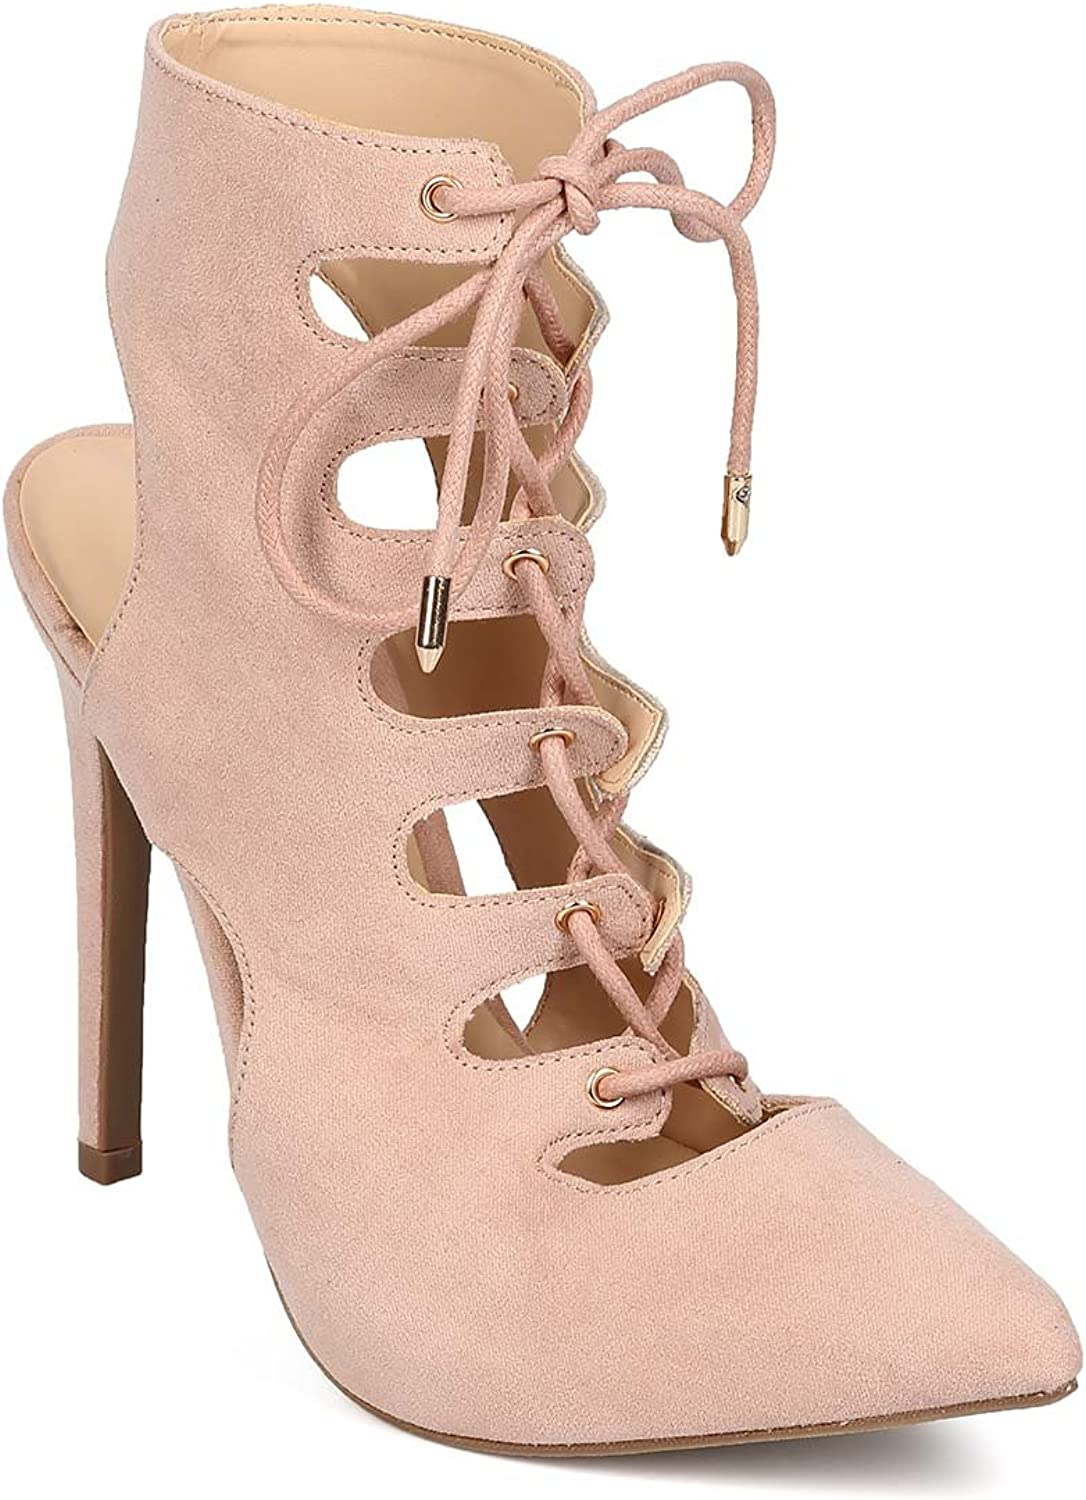 Wild Diva EG94 Women Suede Pointy Toe Lace Up Bootie Gladiator Pump - Nude